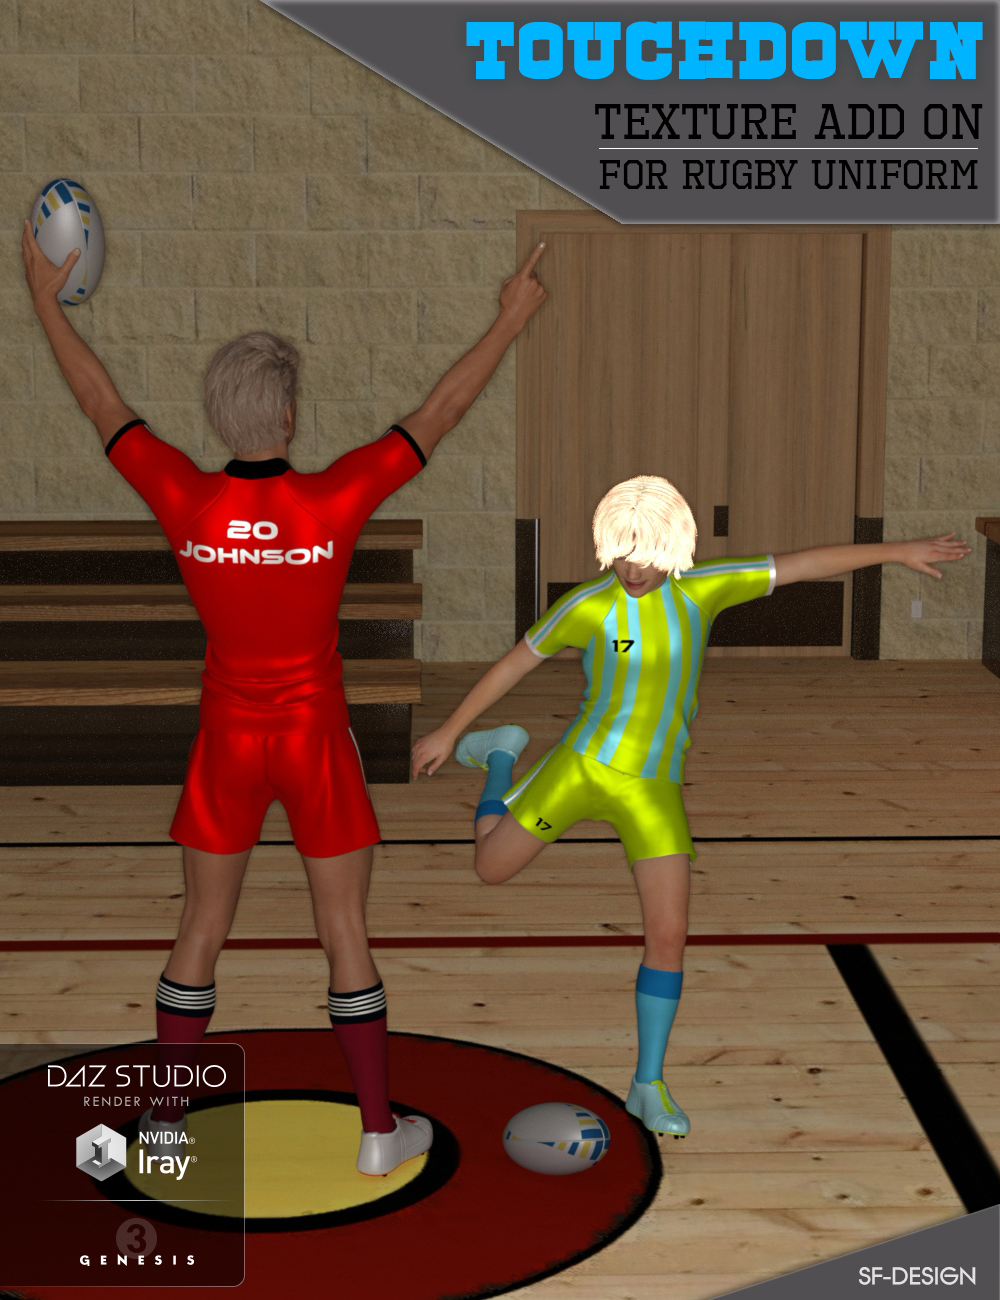 Touchdown Texture Add On for Rugby Uniform by SF-Design